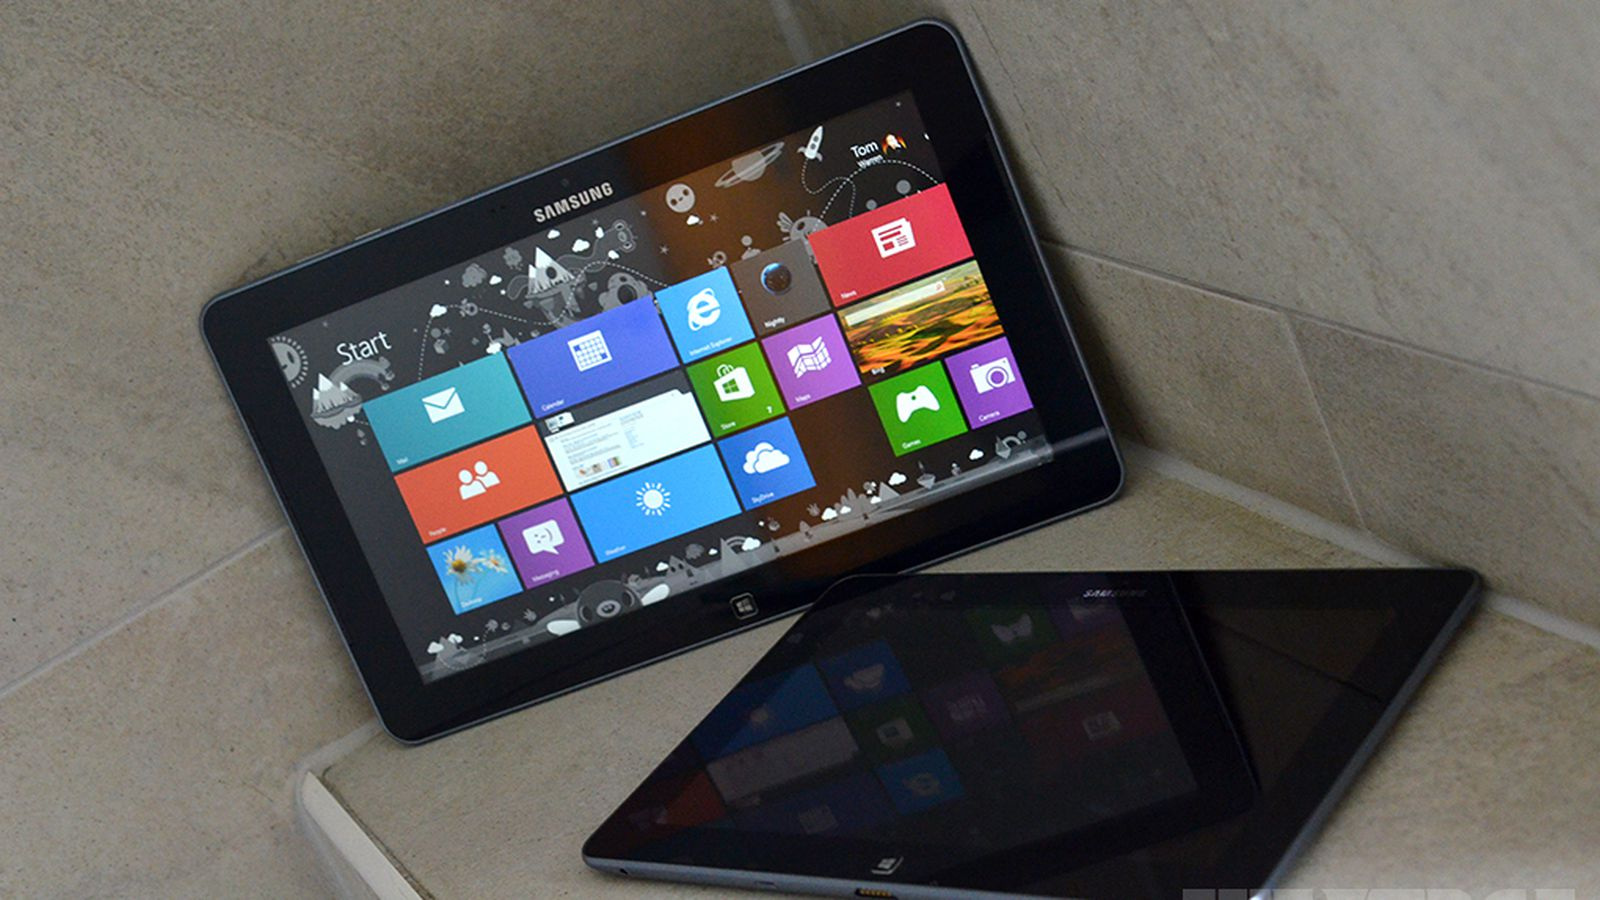 Sync My Ride >> Windows Blue to sync Start Screen settings and paired ...